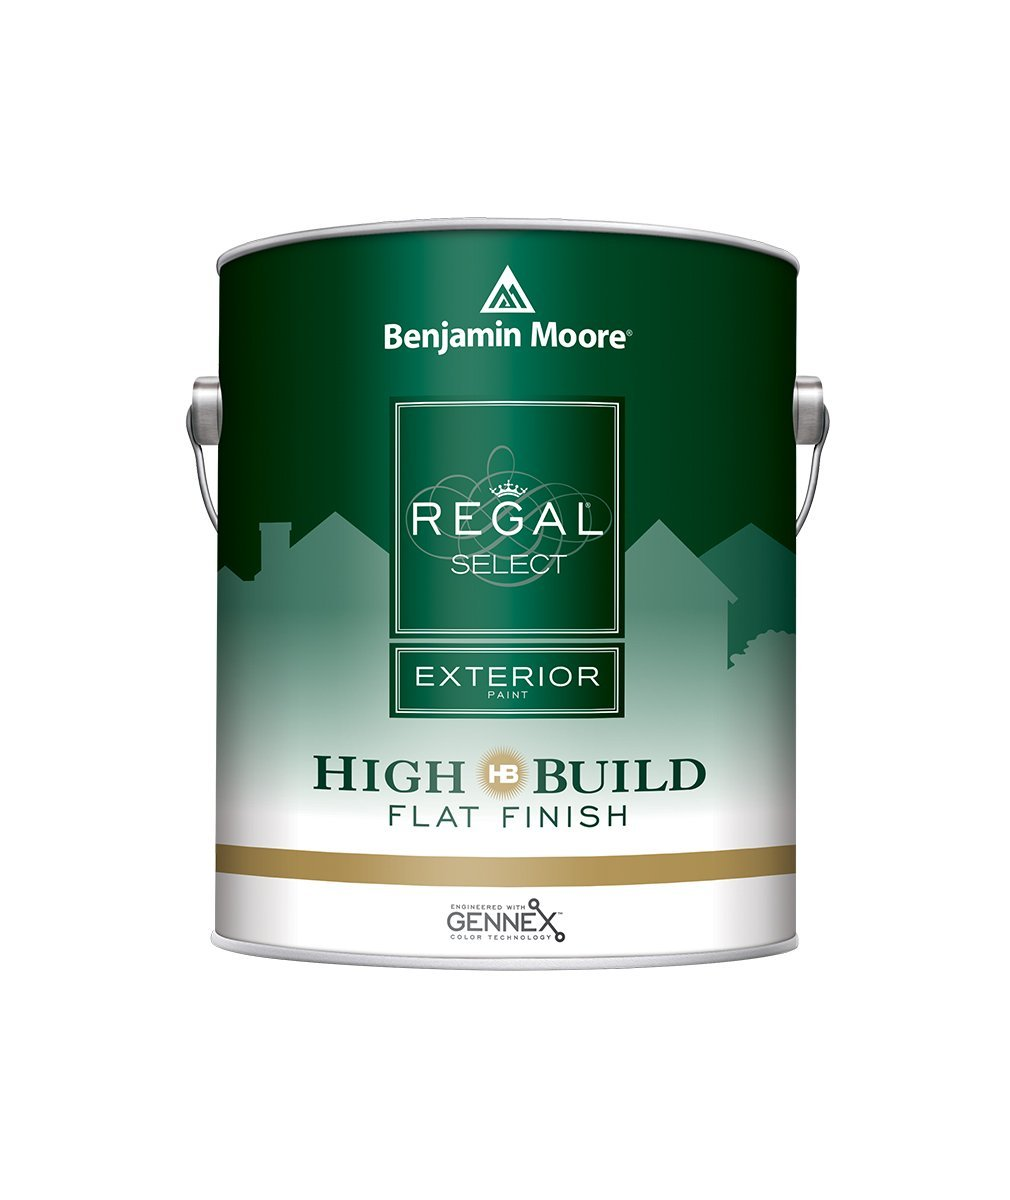 Benjamin Moore Regal Select High Build Flat Exterior Paint Gallon, available at Mallory Paint Stores.